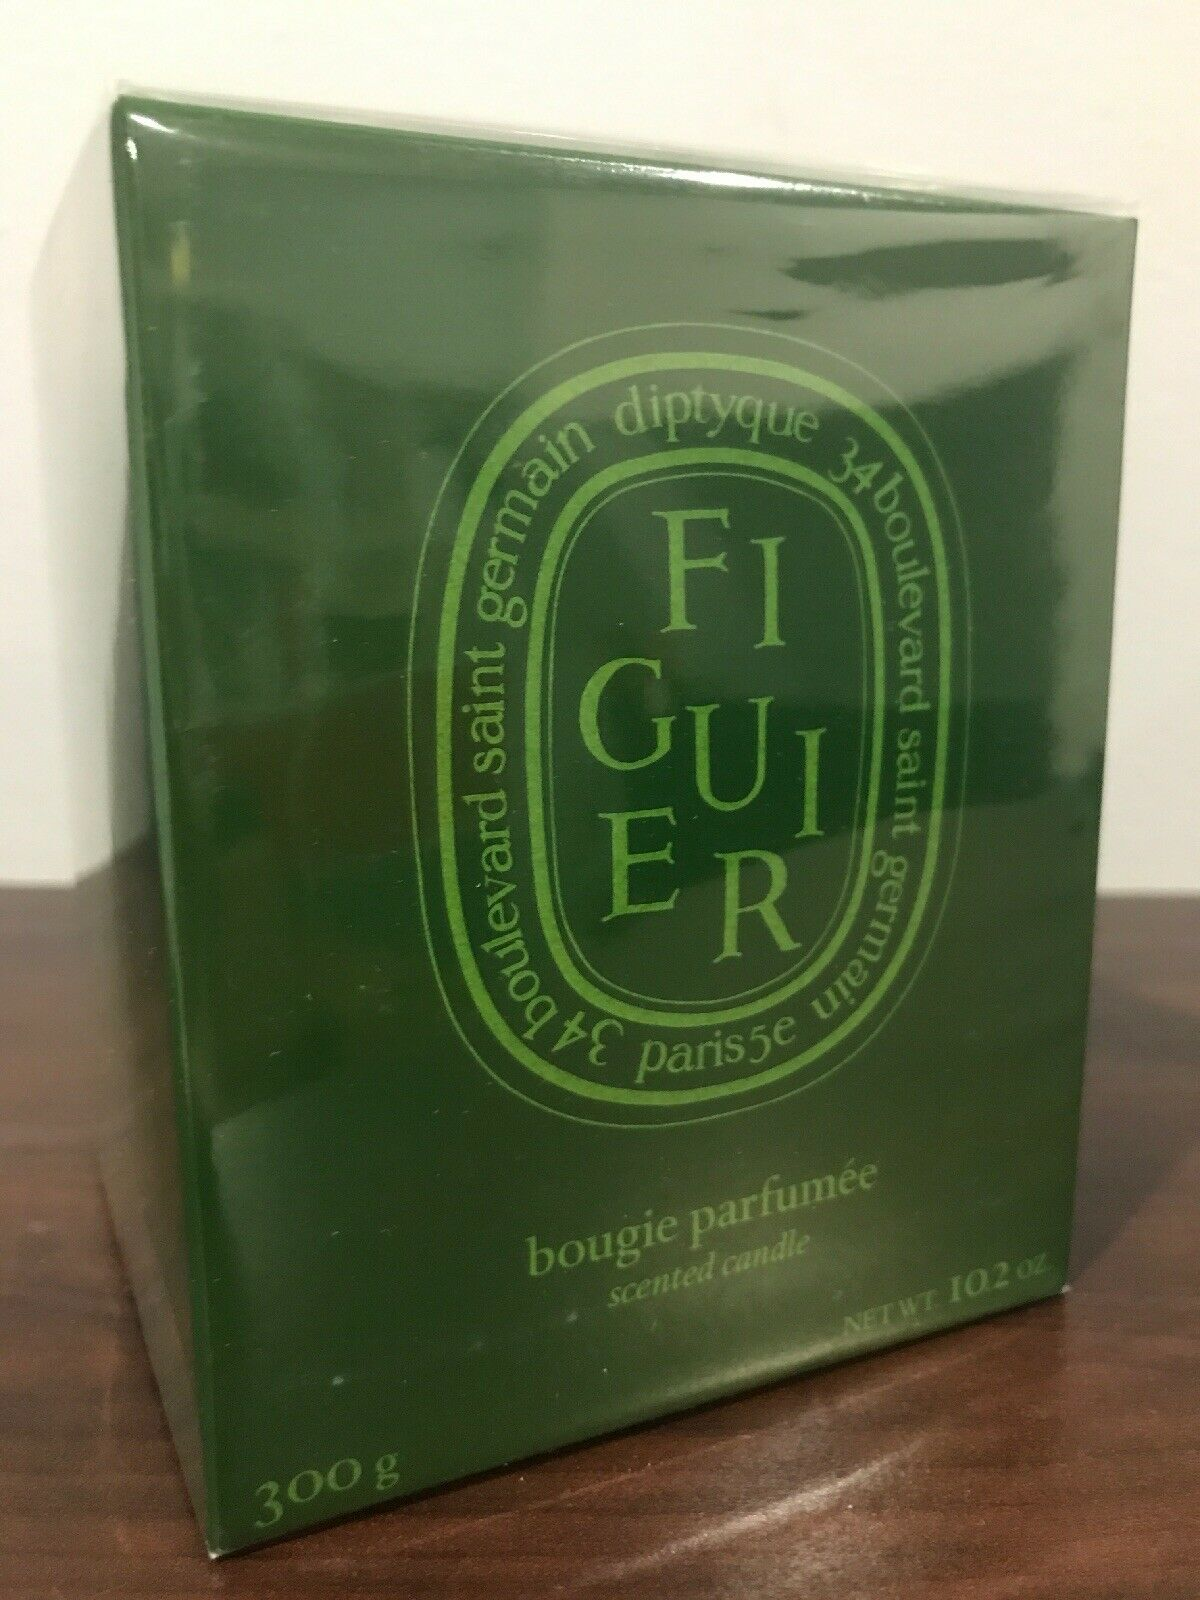 Diptyque Figuier Candle 10.2oz Sealed